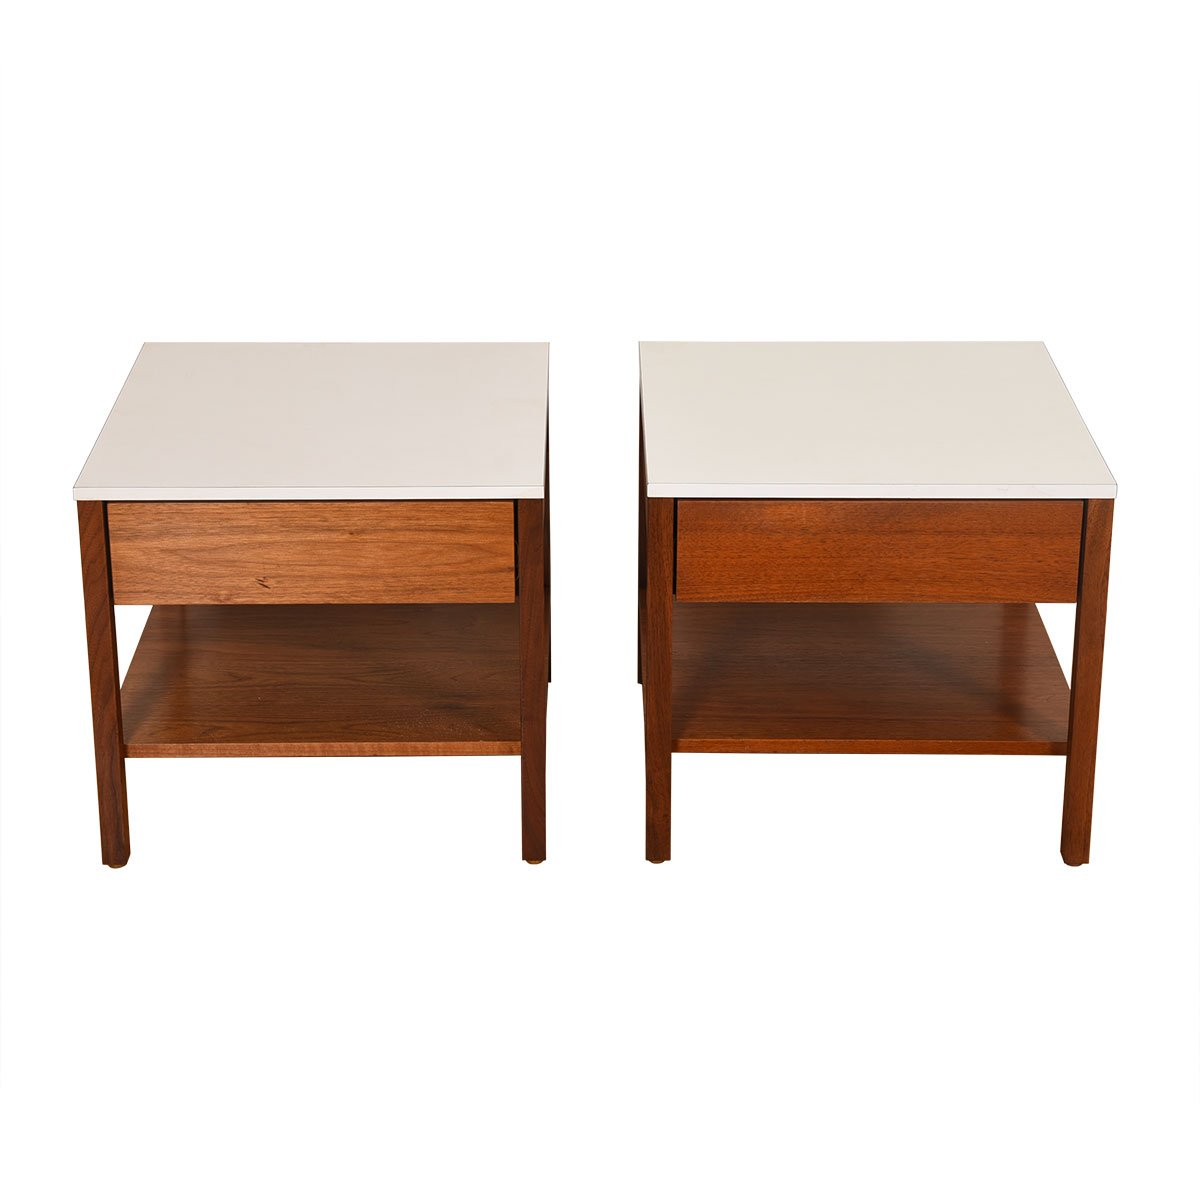 Pair of Mid Century Walnut White Top Nightstands / Side Tables by Knoll.